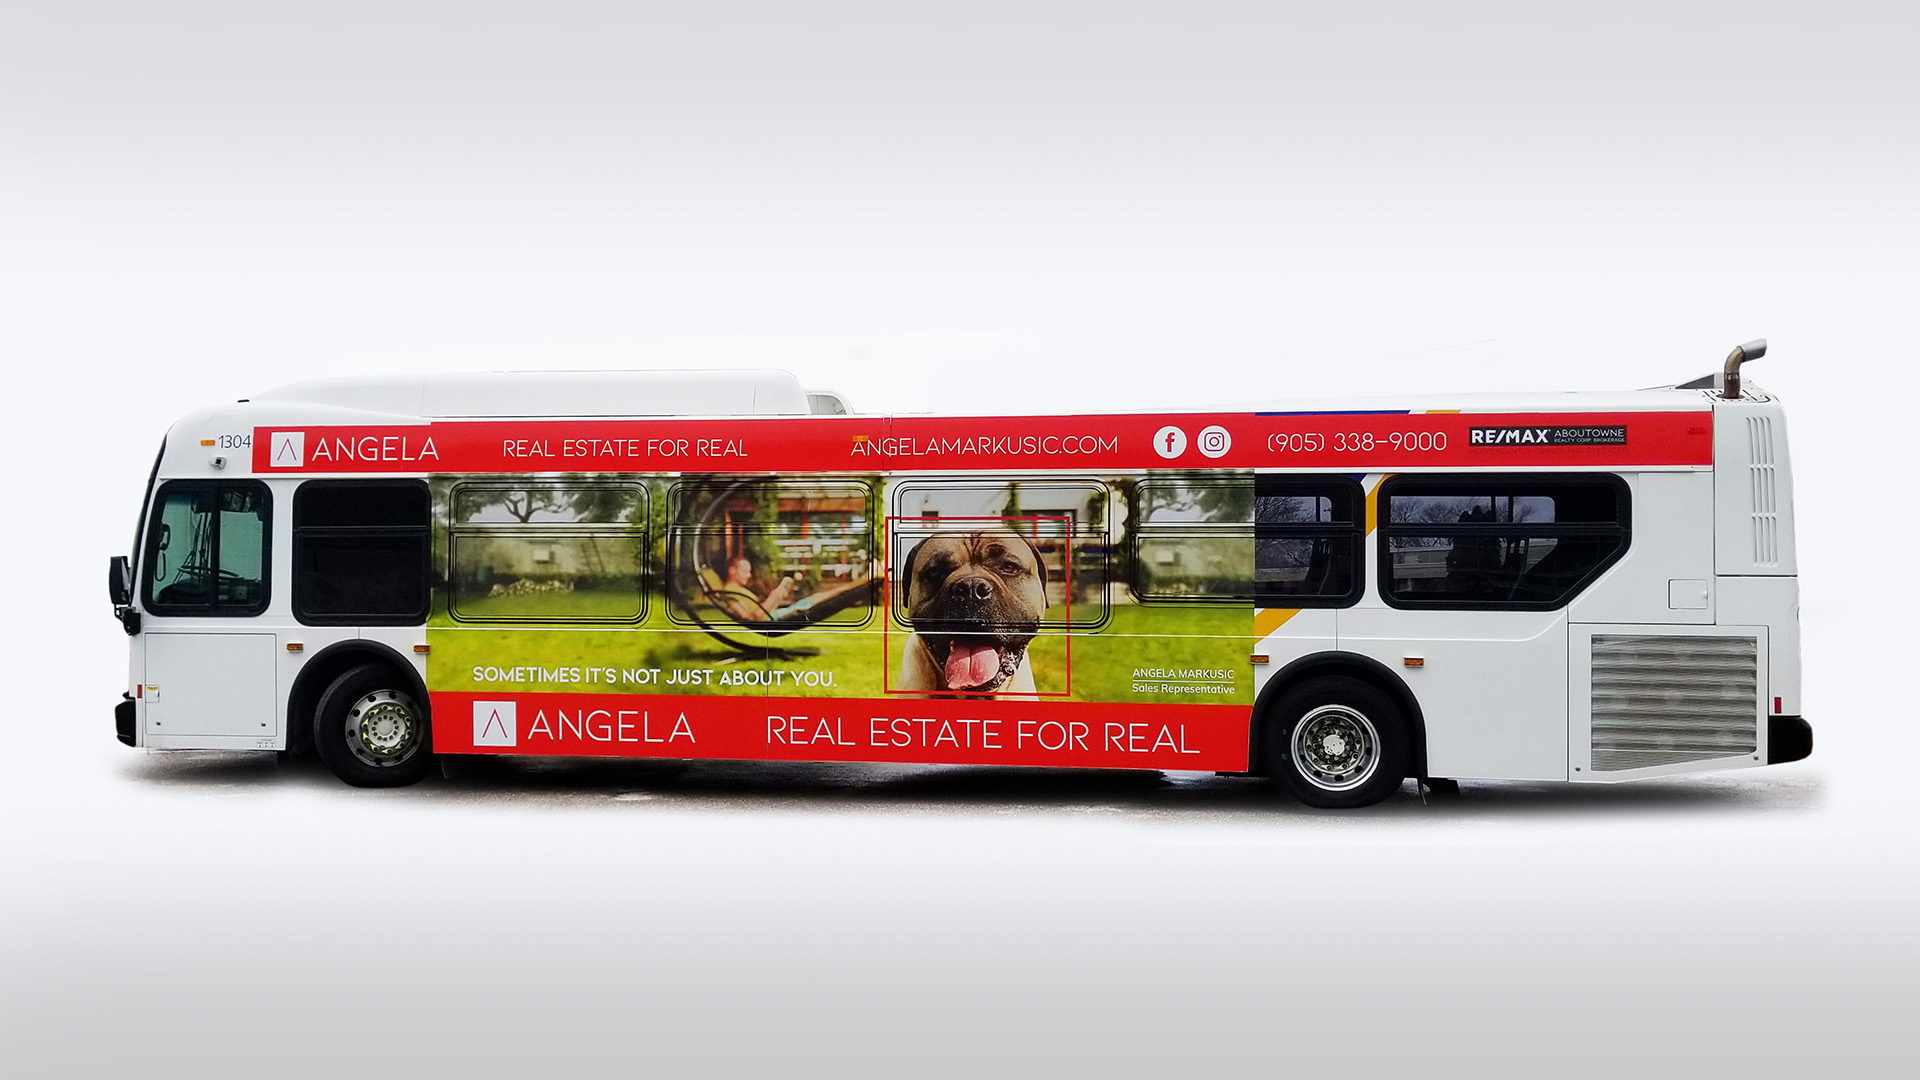 Angela Markusic Bus advertisement